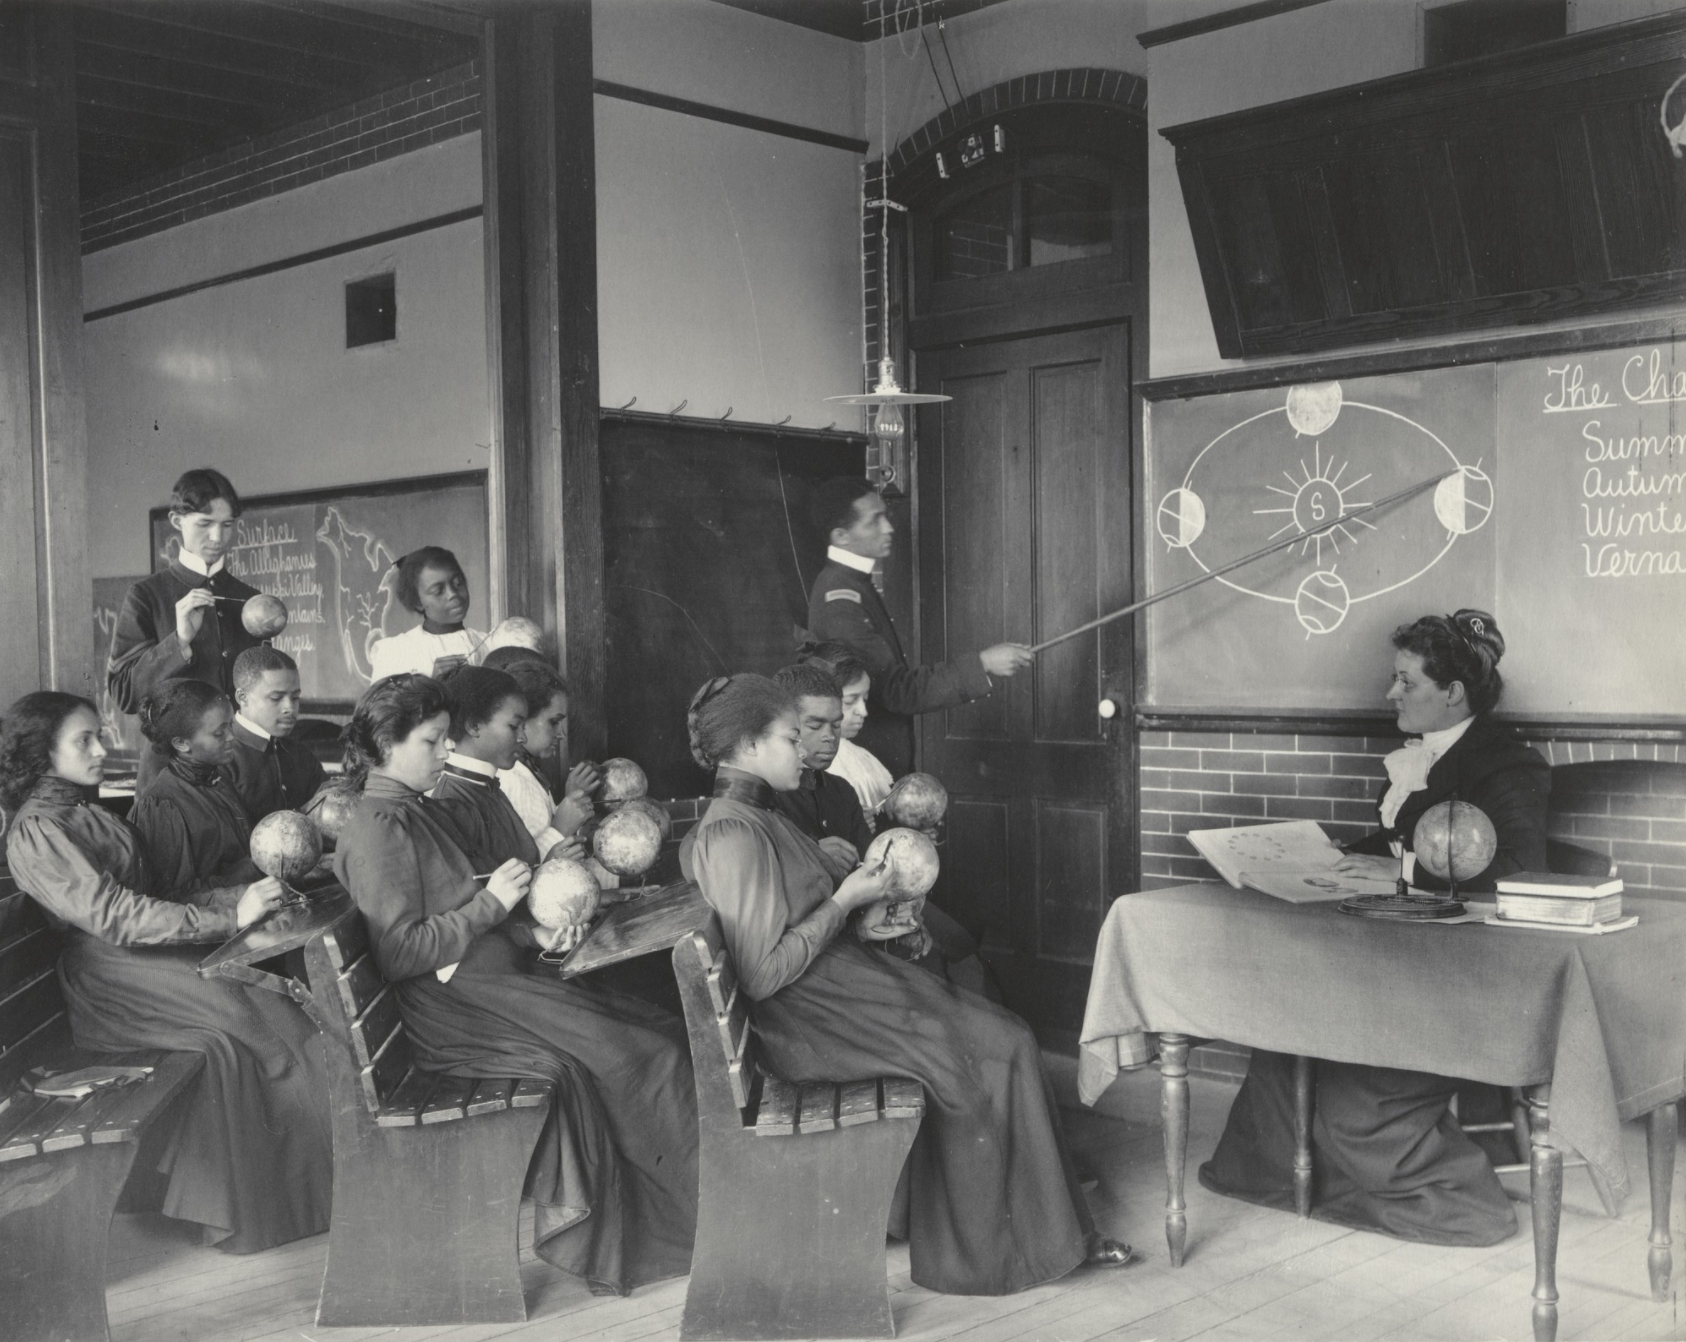 In this black and white photograph, several African American and Native American students sit on benches in a classroom. Each holds a small globe. At right, an African American man stands near a blackboard, holding a long pointer to a chalk drawing illustrating the earth's rotation around the sun. A white woman sits at a desk just underneath the chalkboard. Behind the students is an African American woman standing and looking at the man at the board. A man standing next to her is looking at a globe in his hands.